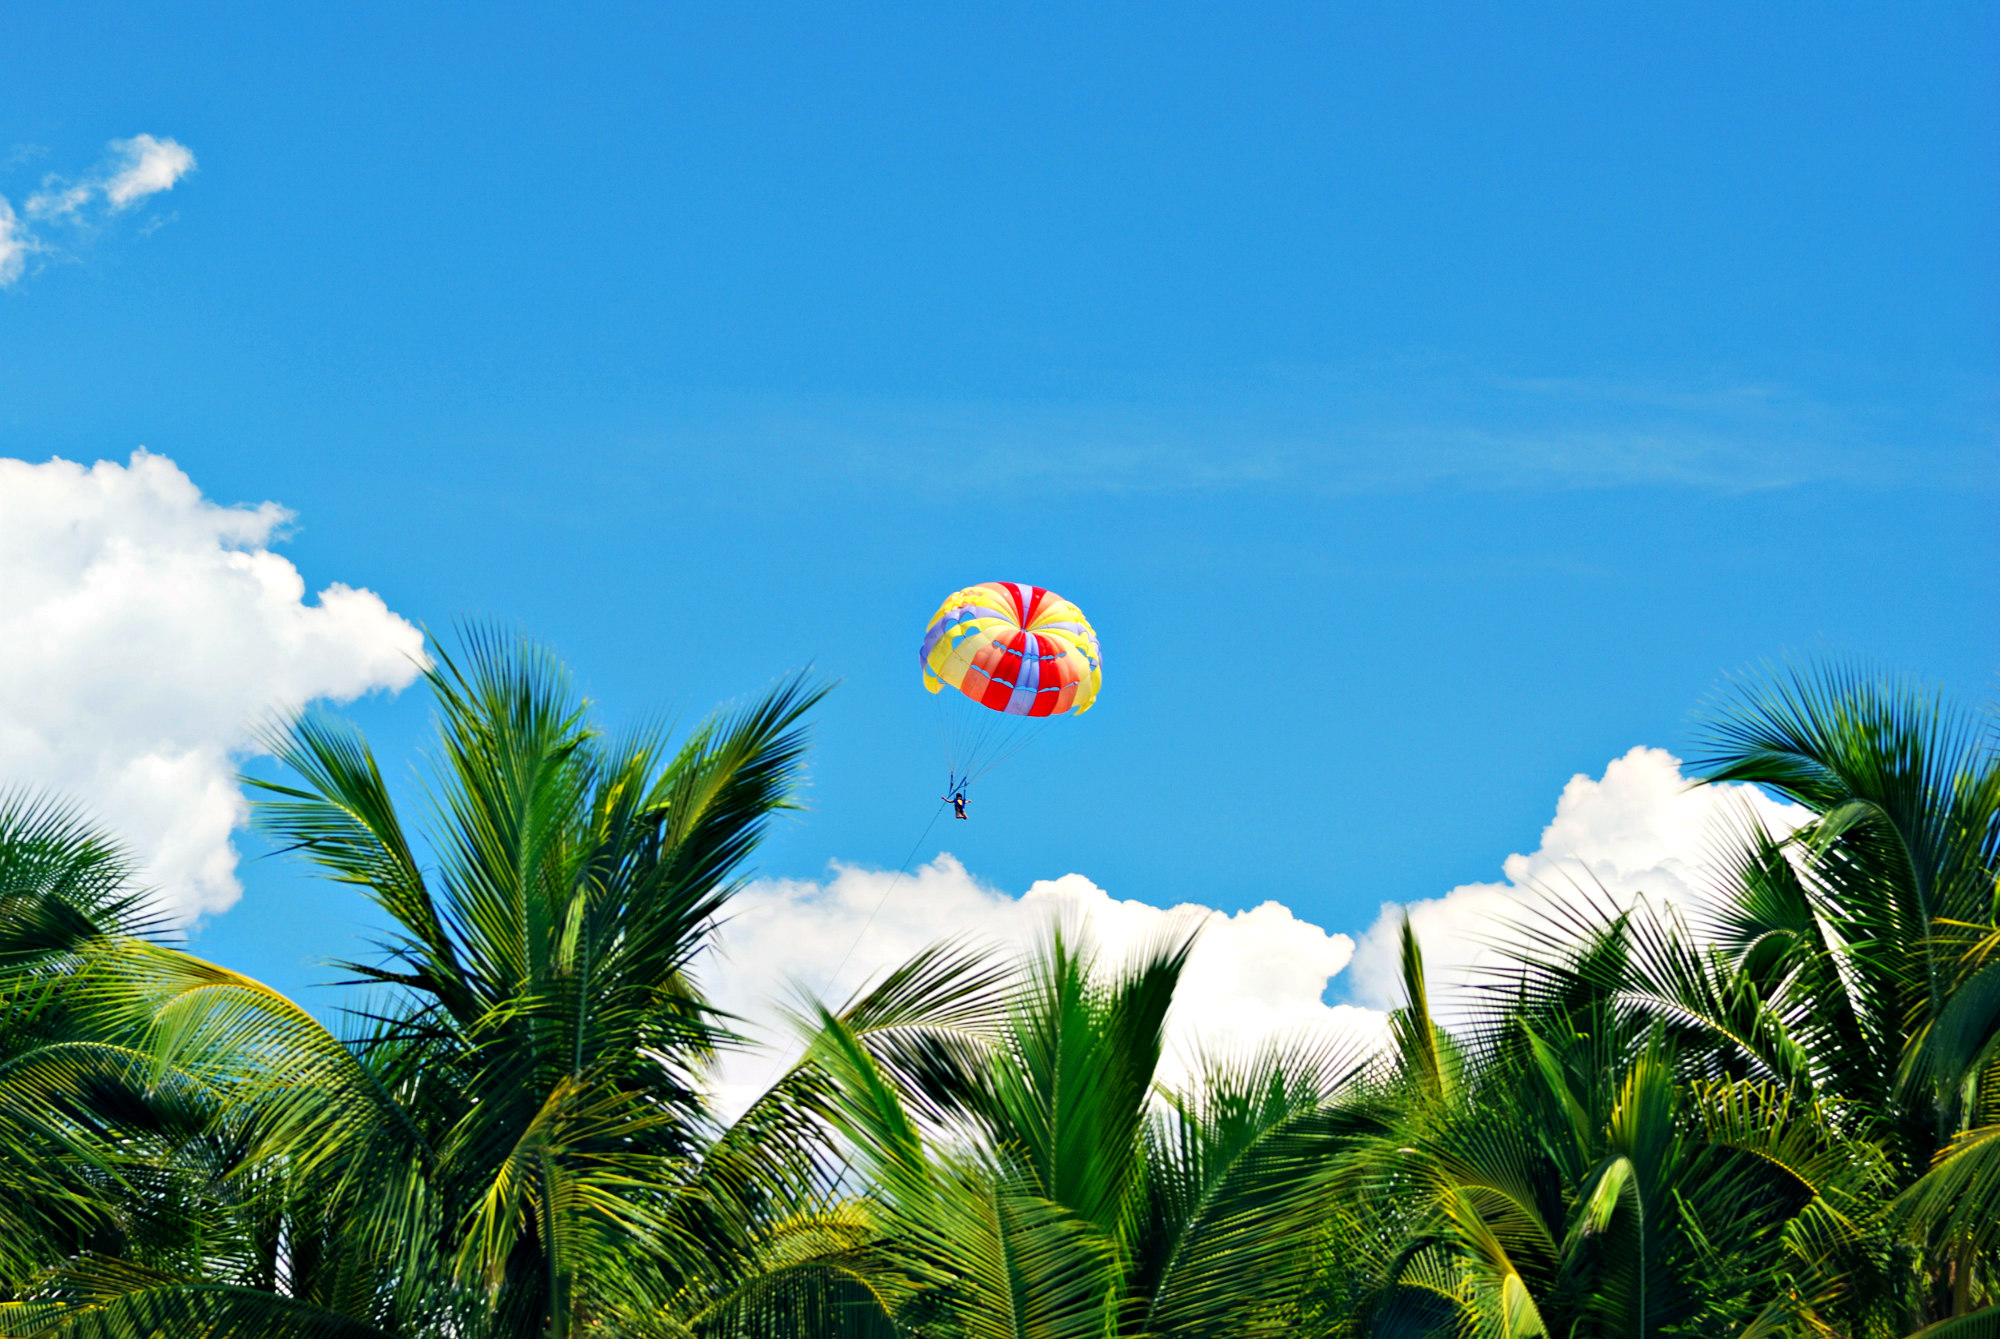 Parasailing through a bright-blue sky over a grove of leafy palm trees